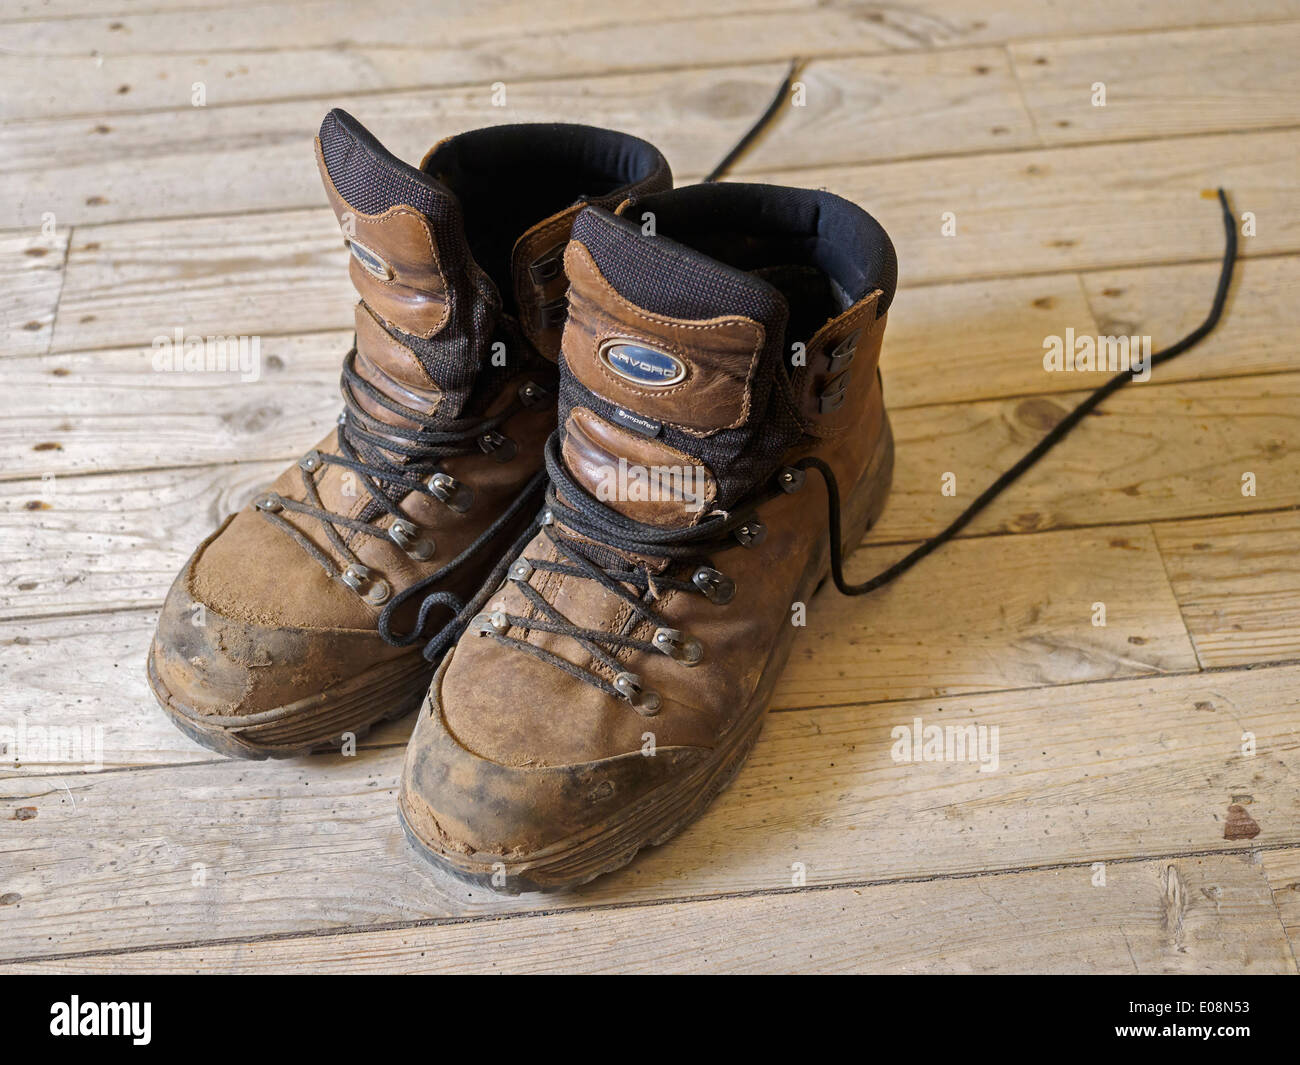 One pair of worn and dirty Lavoro brown walking boots Stock Photo